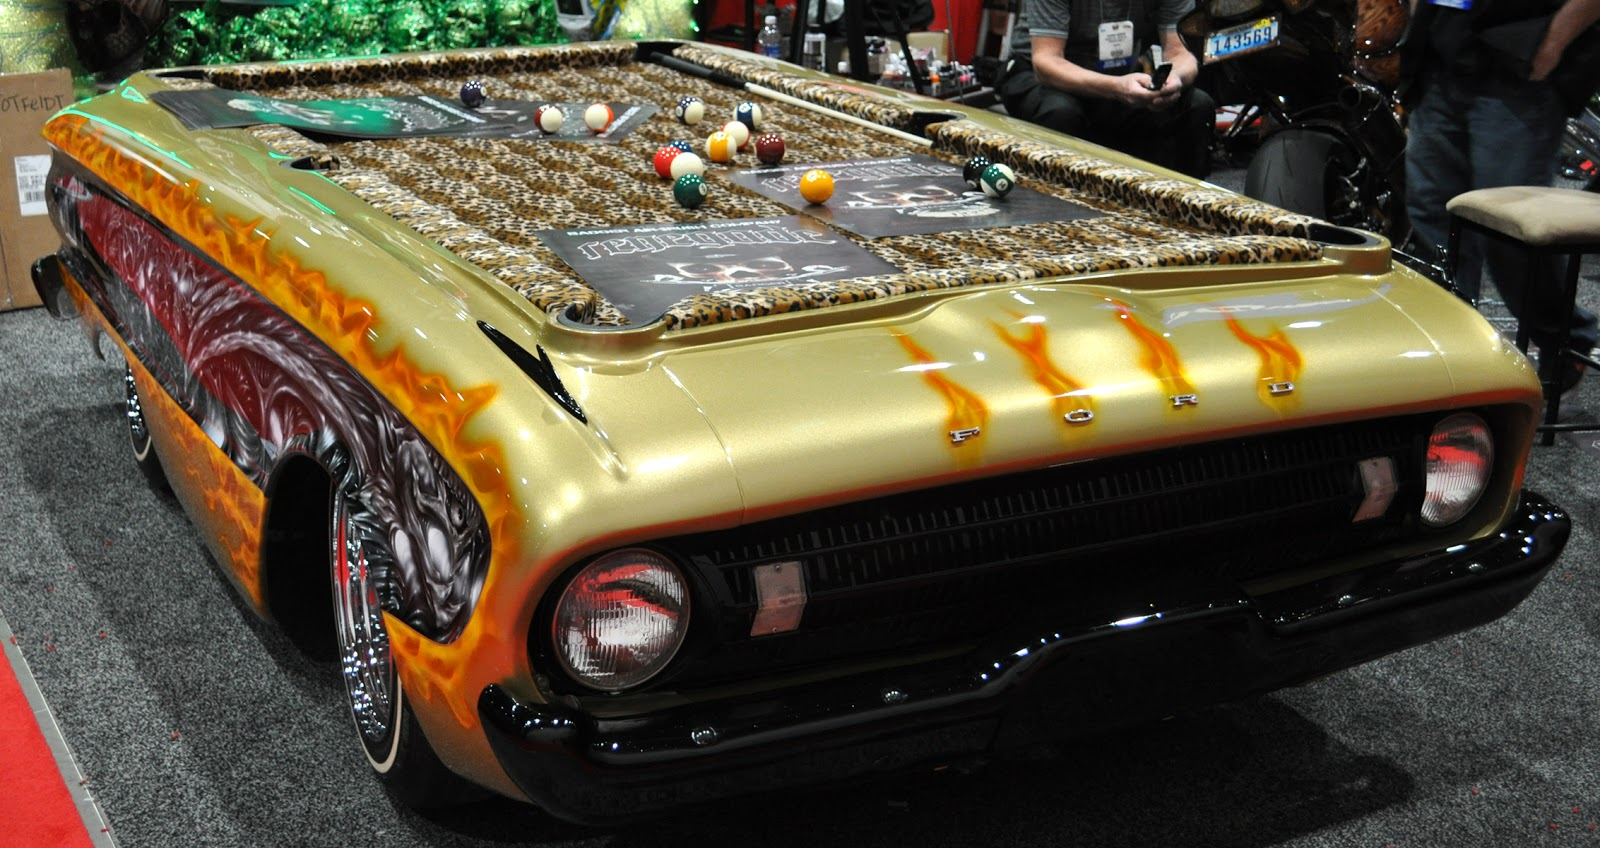 20 Automotive-Themed Furniture & Accessories (Pictures)